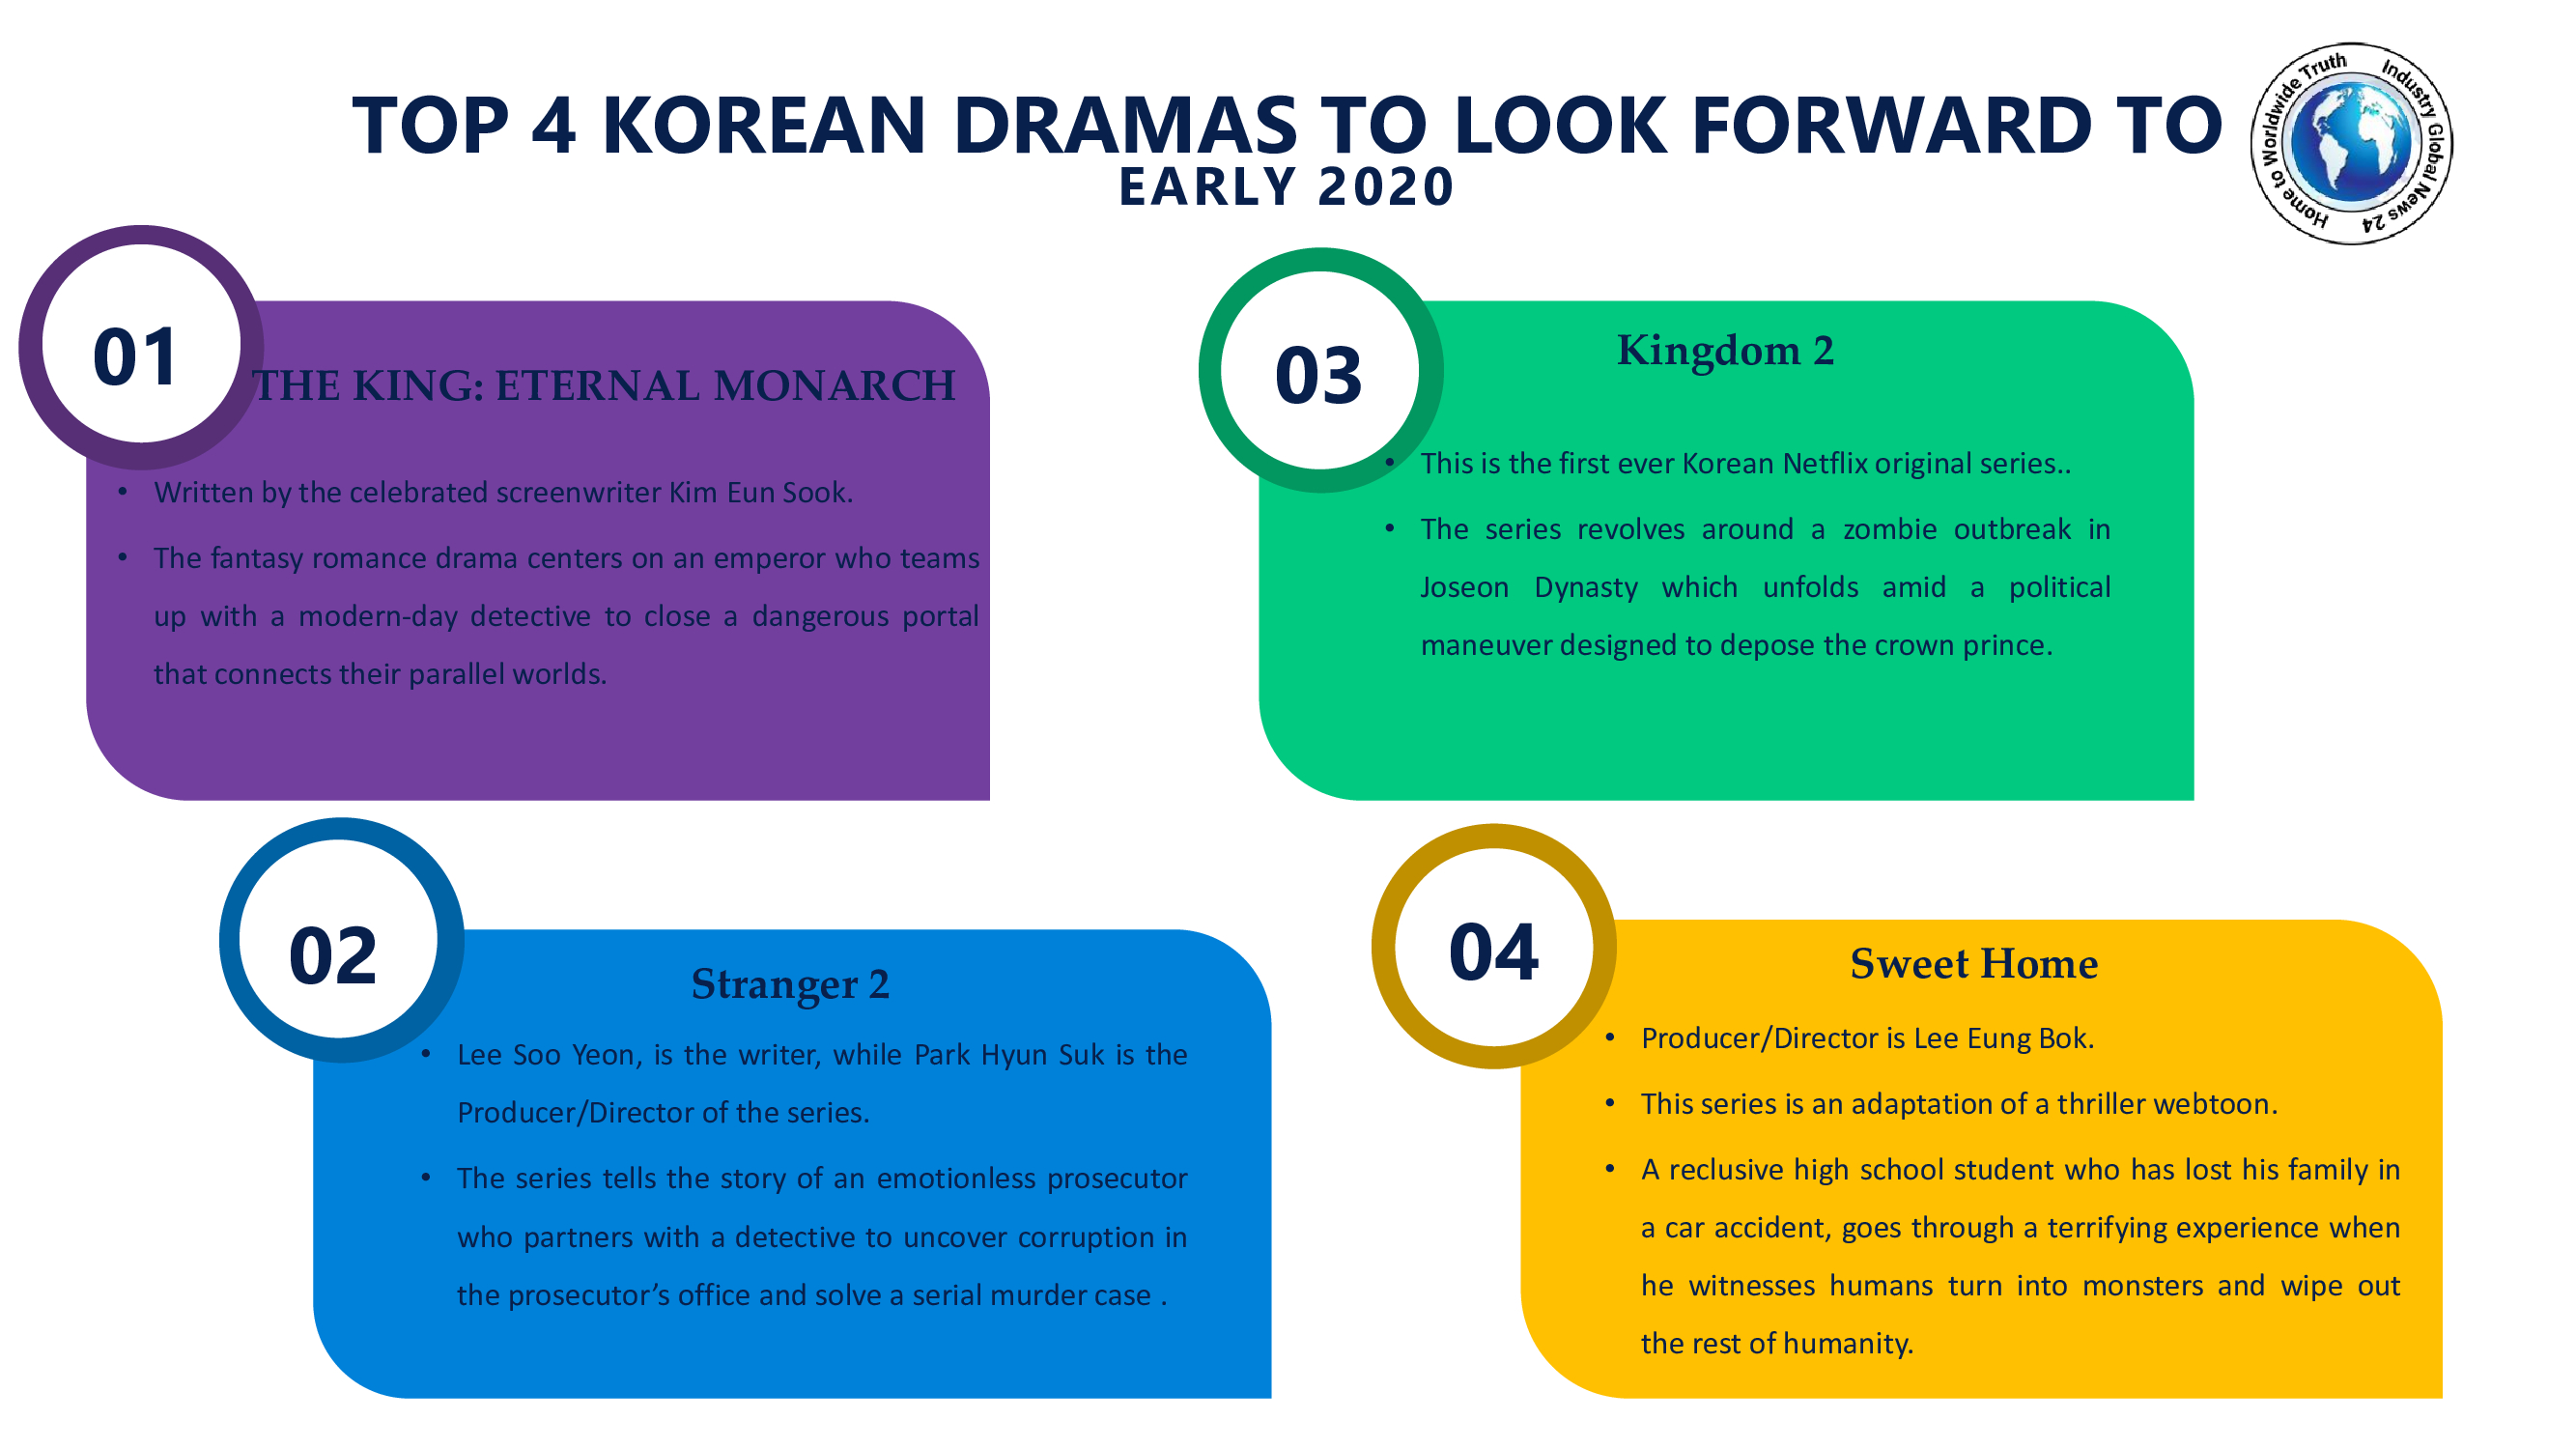 TOP 4 KORENA DRAMAS TO LOOK FORWORD TO